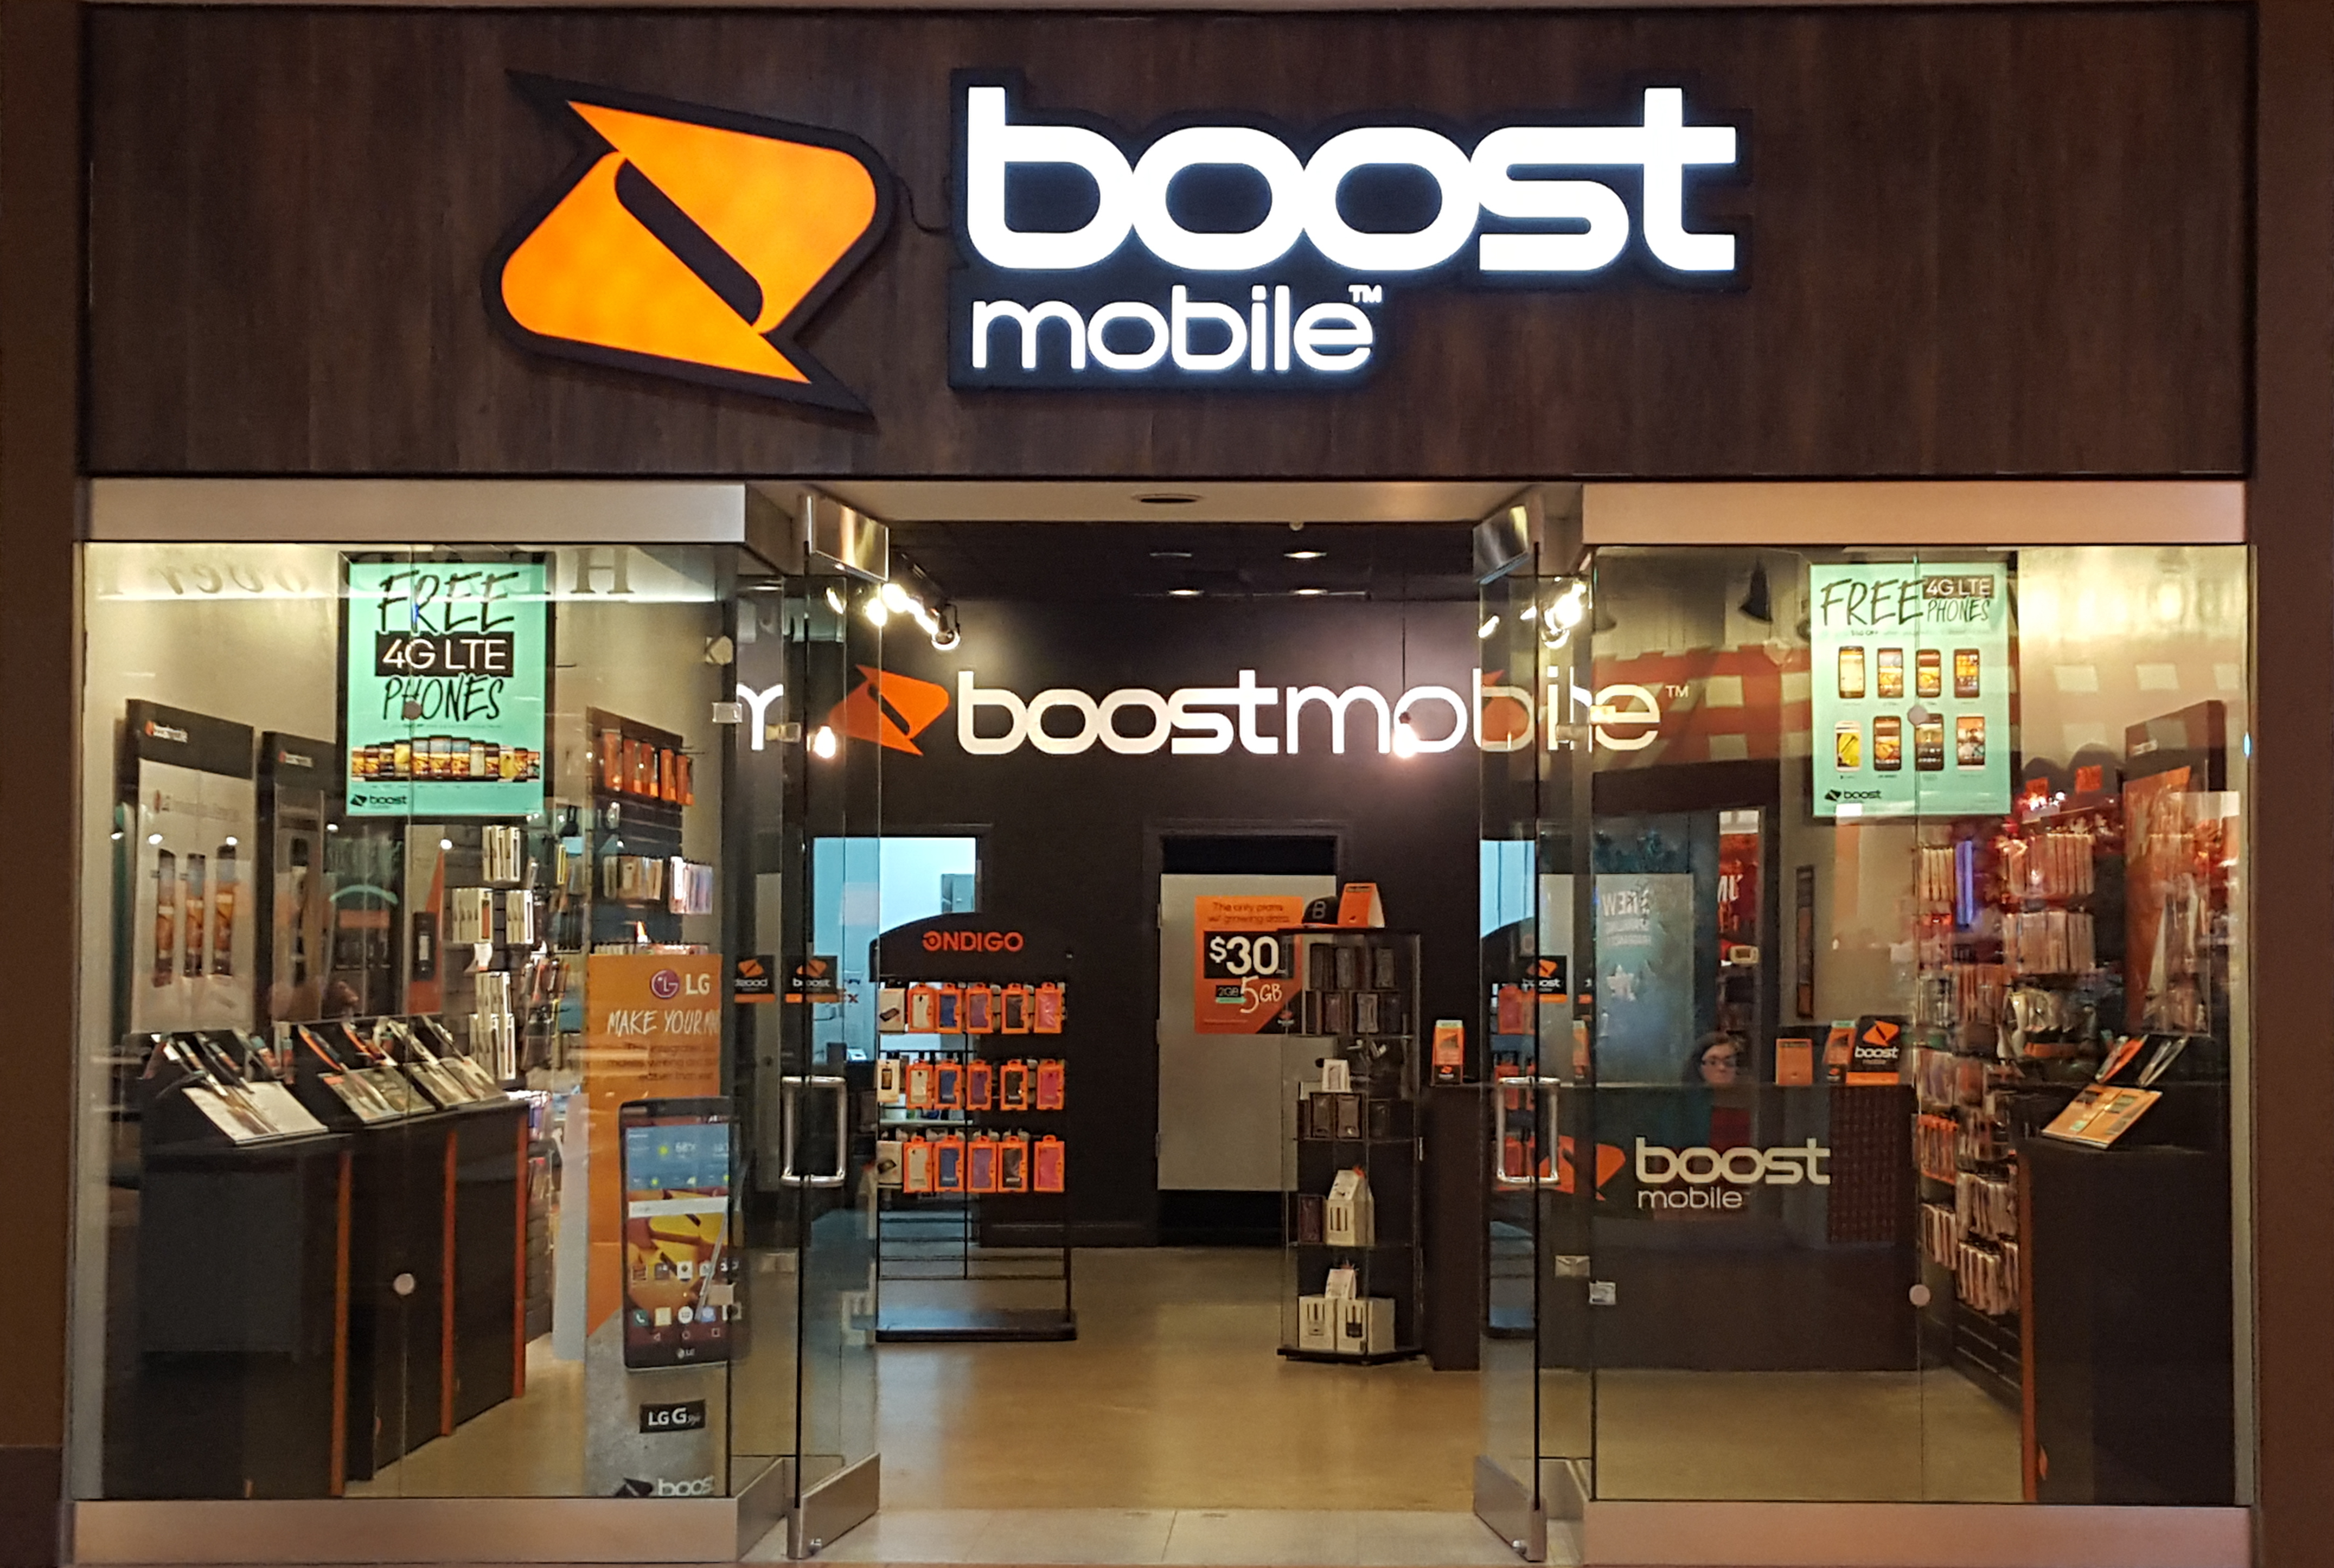 Boost mobile store design images galleries with a bite - Home decorating online stores decor ...